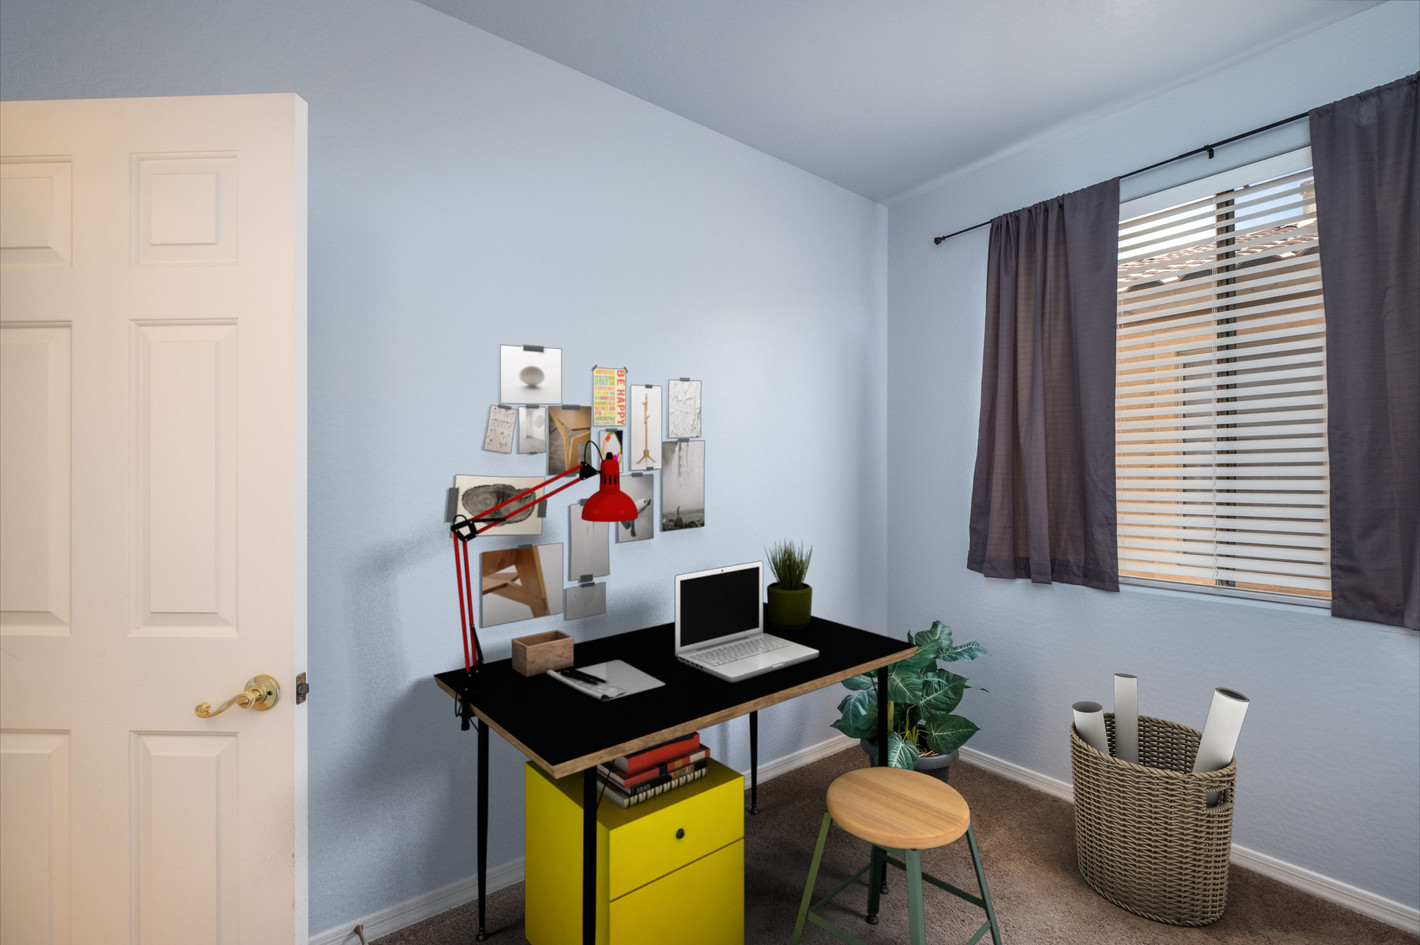 Bedroom 3/office virtually staged